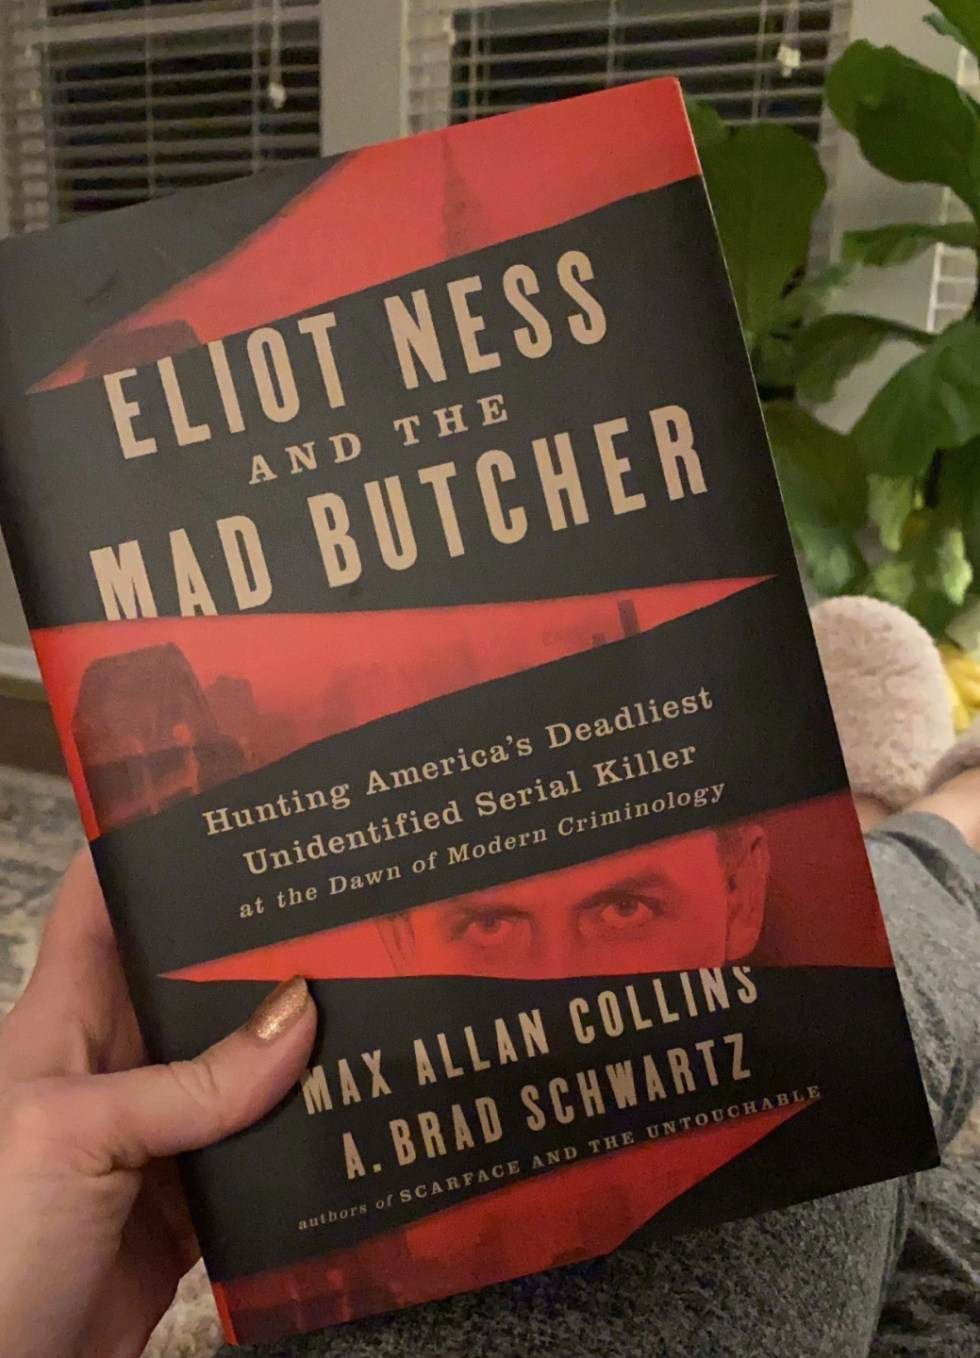 2021 Reading List: What I've Read So Far - I'm Fixin' To - @imfixintoblog | 2021 Reading List by popular NC lifestyle blog, I'm Fixin' To: image of Eliot Ness and the Mad Butcher.